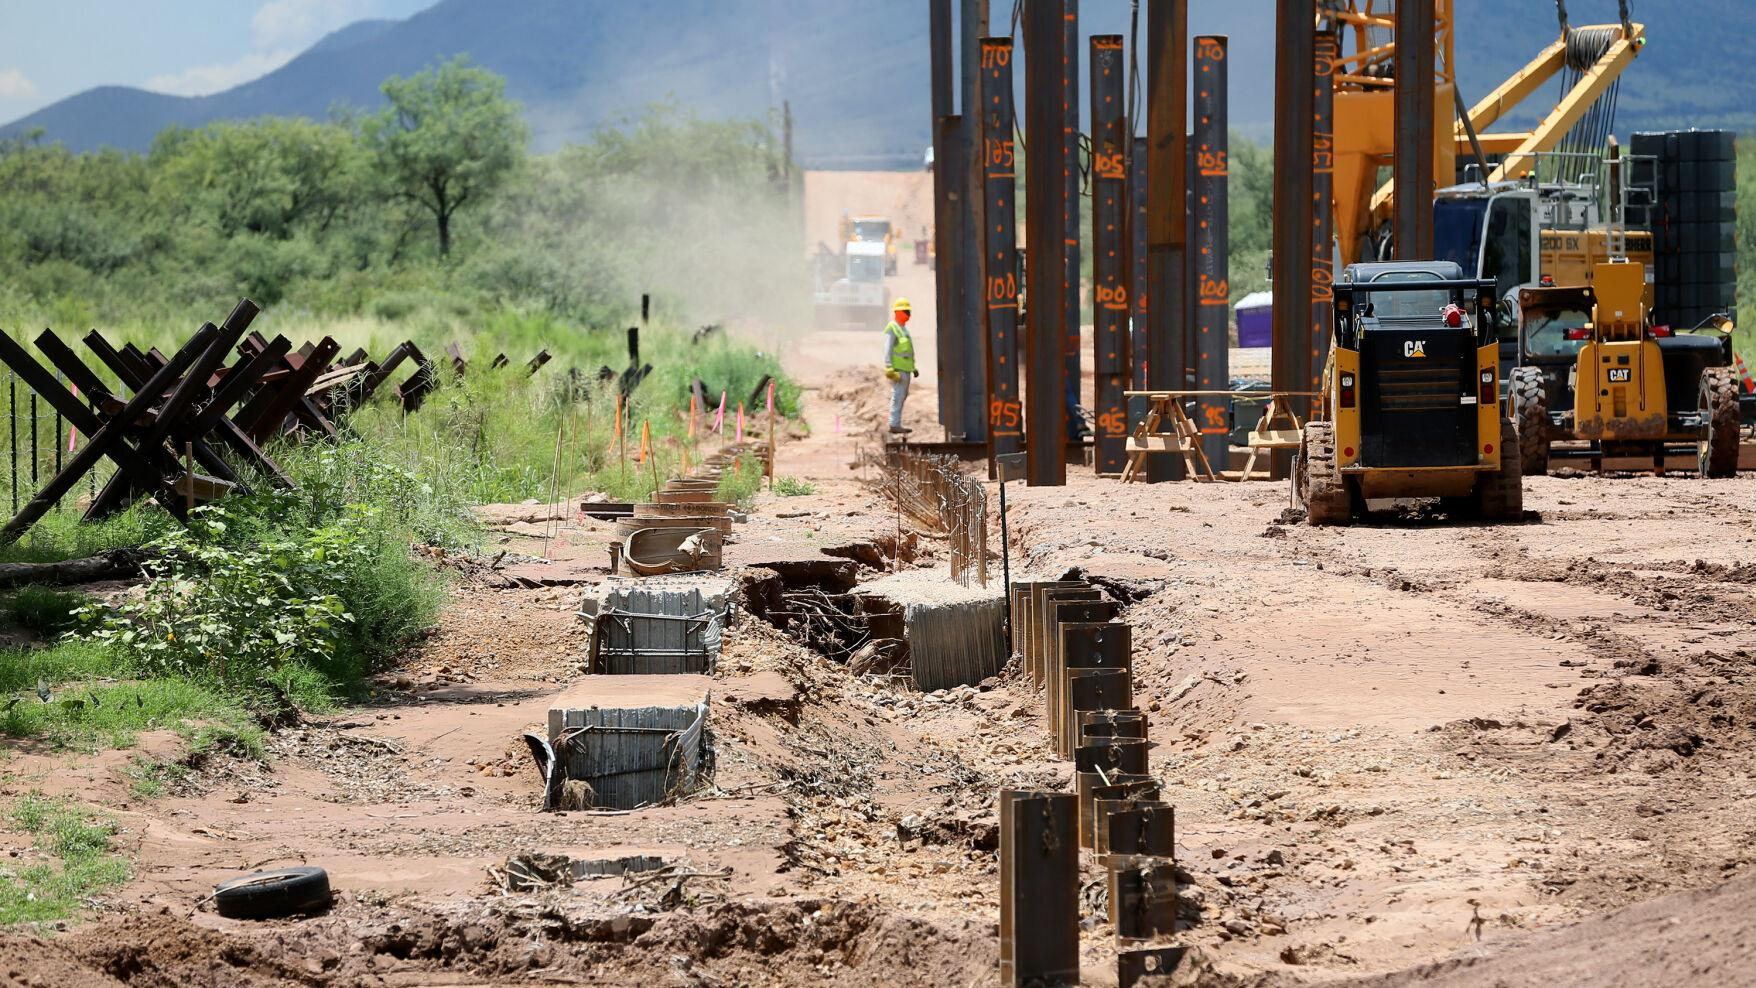 Photos: Monsoon Storm Washes out Border Wall Construction | Local ...